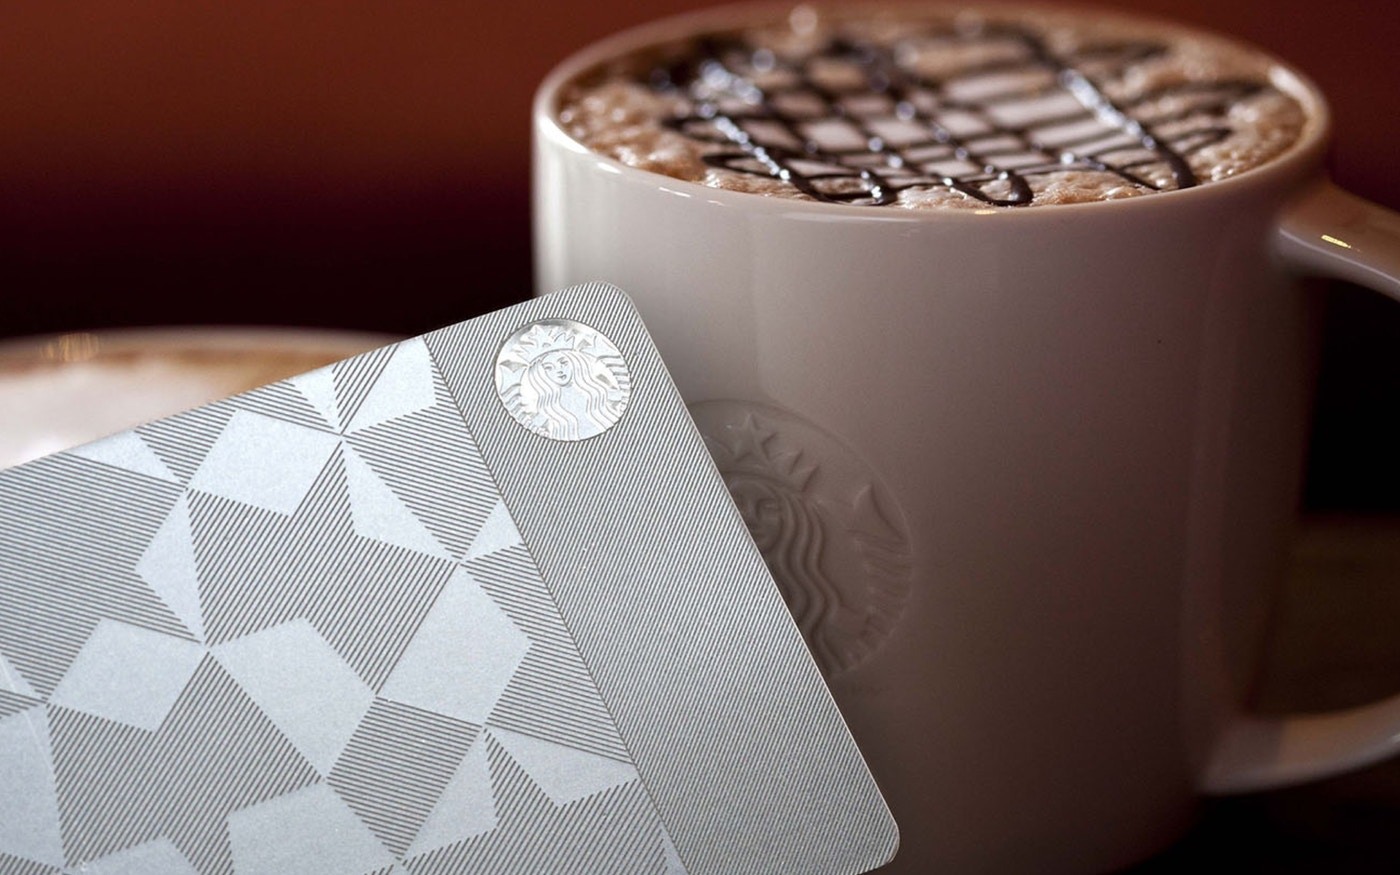 Starbucks coffee and gift card with new brand visual identity